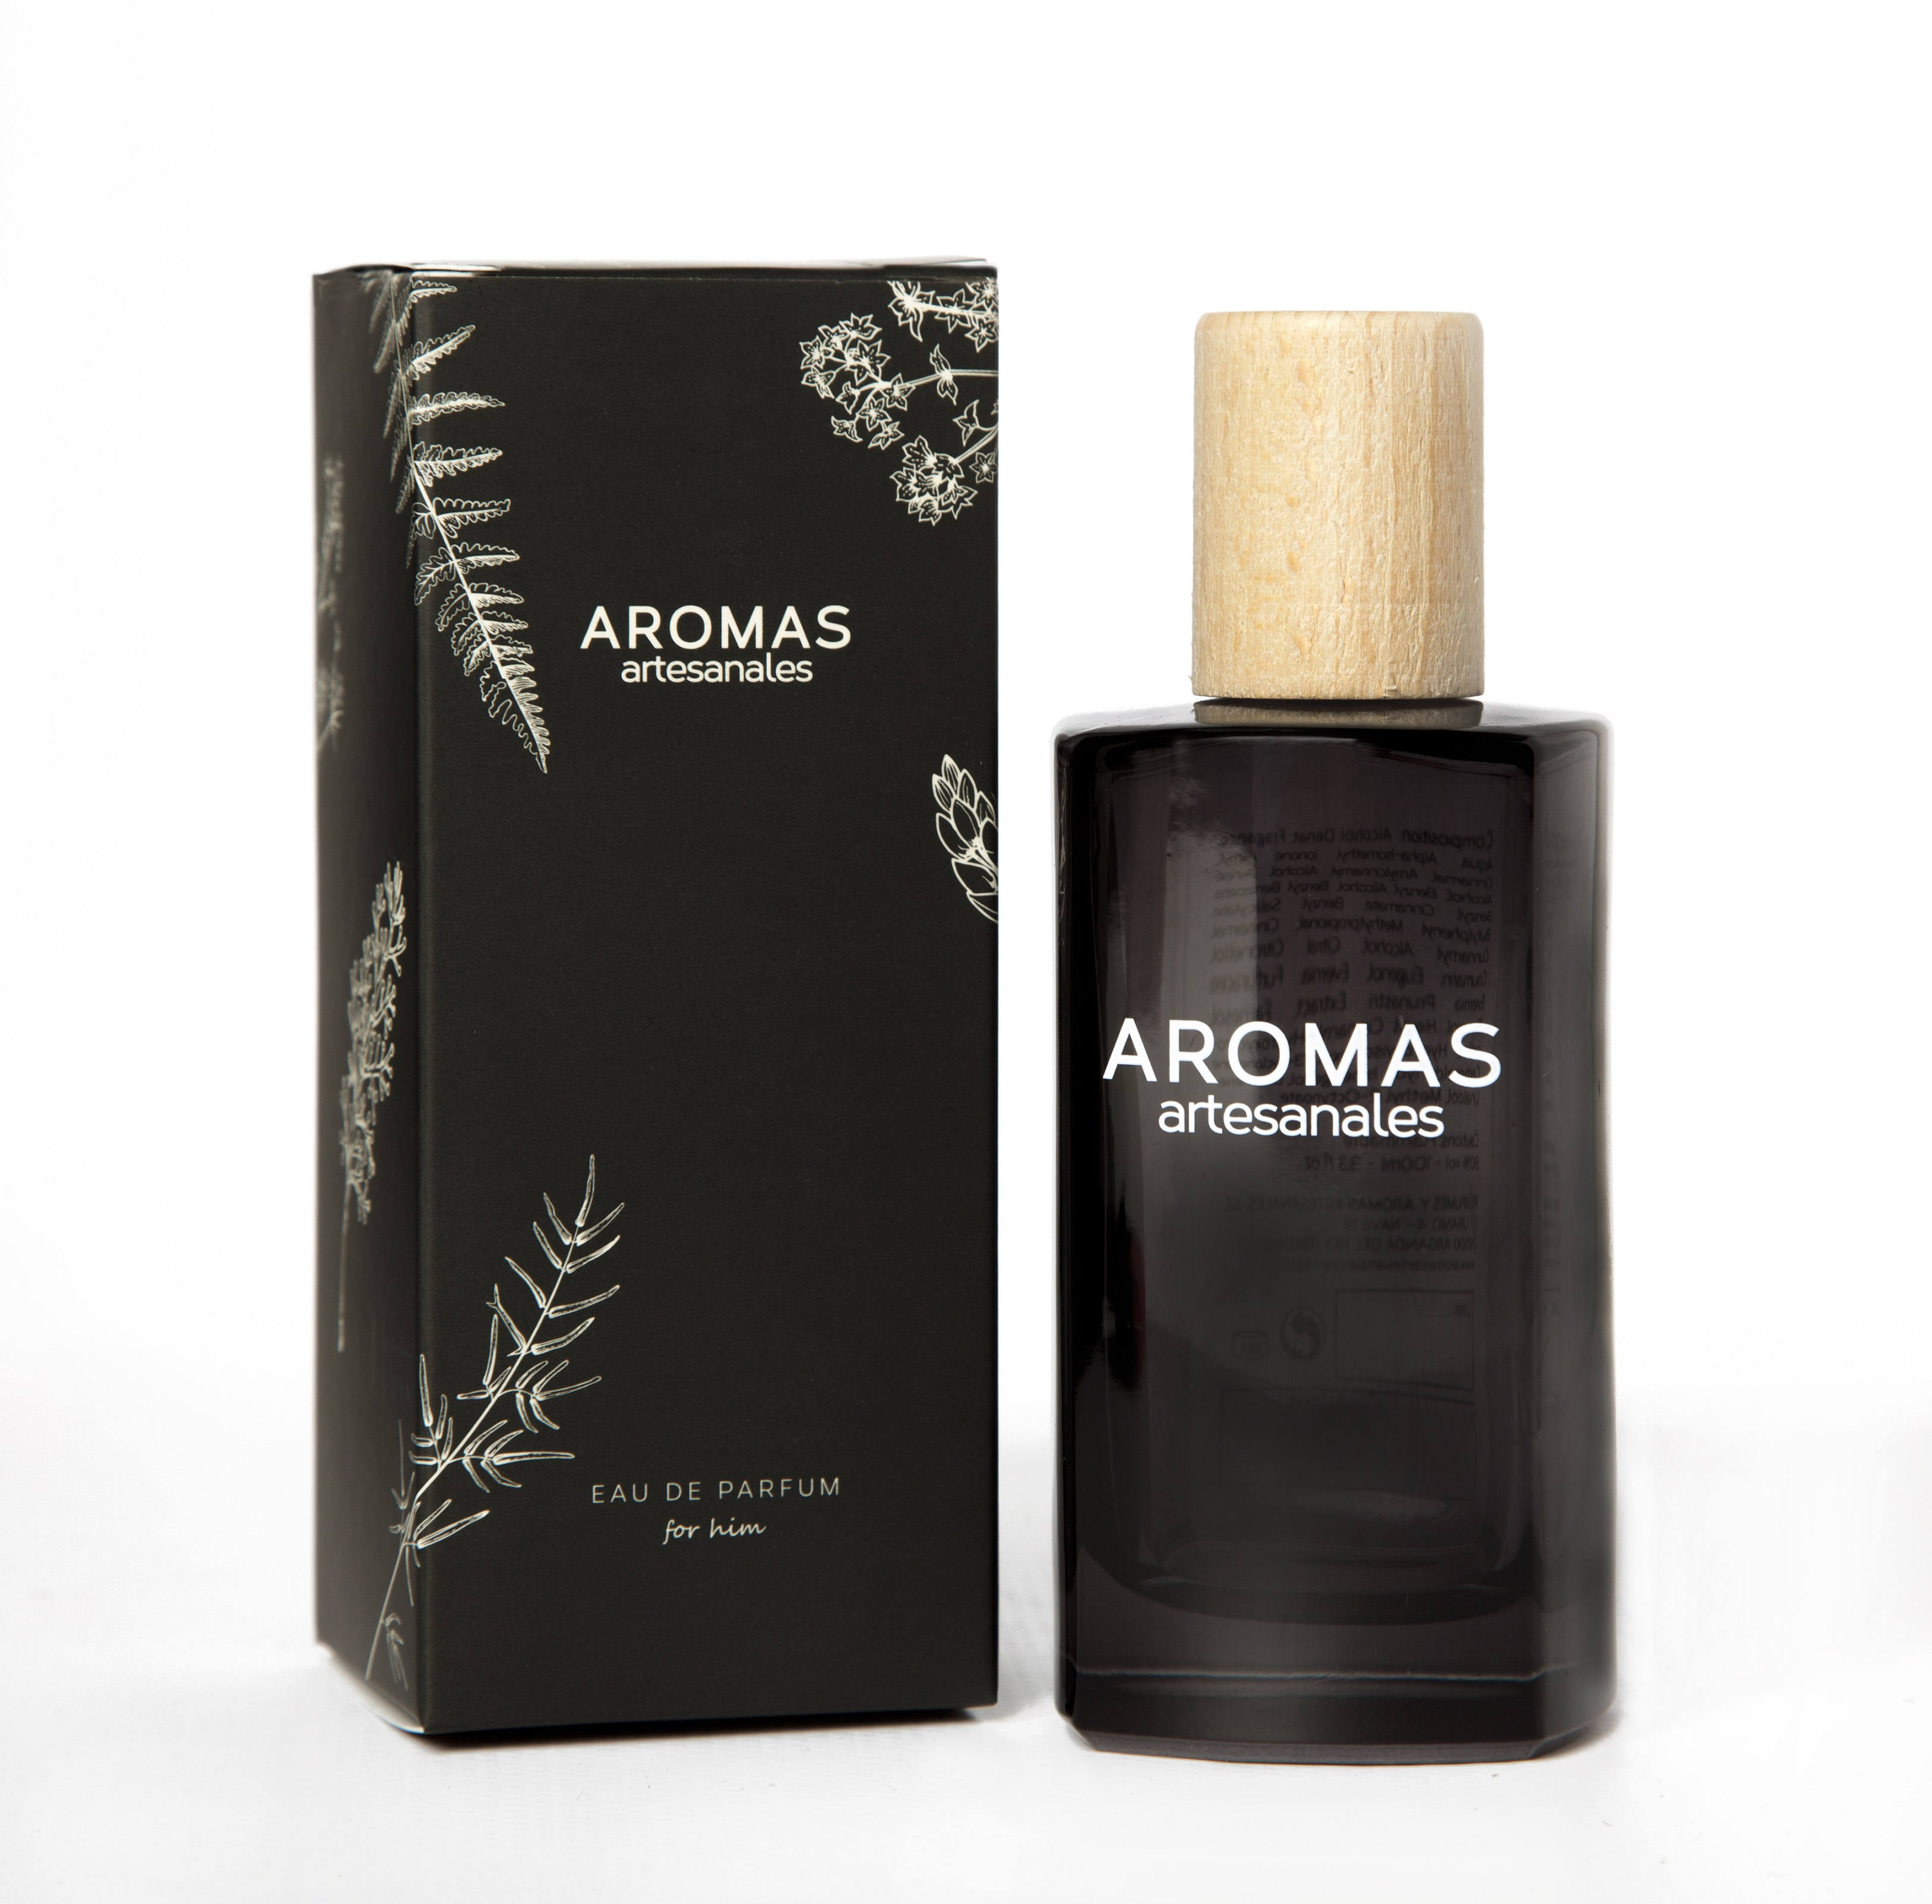 SCENTS CRAFT Barrax | Perfume With Spray For Men | Masculine Fragrance 100 Ml | Different Scents